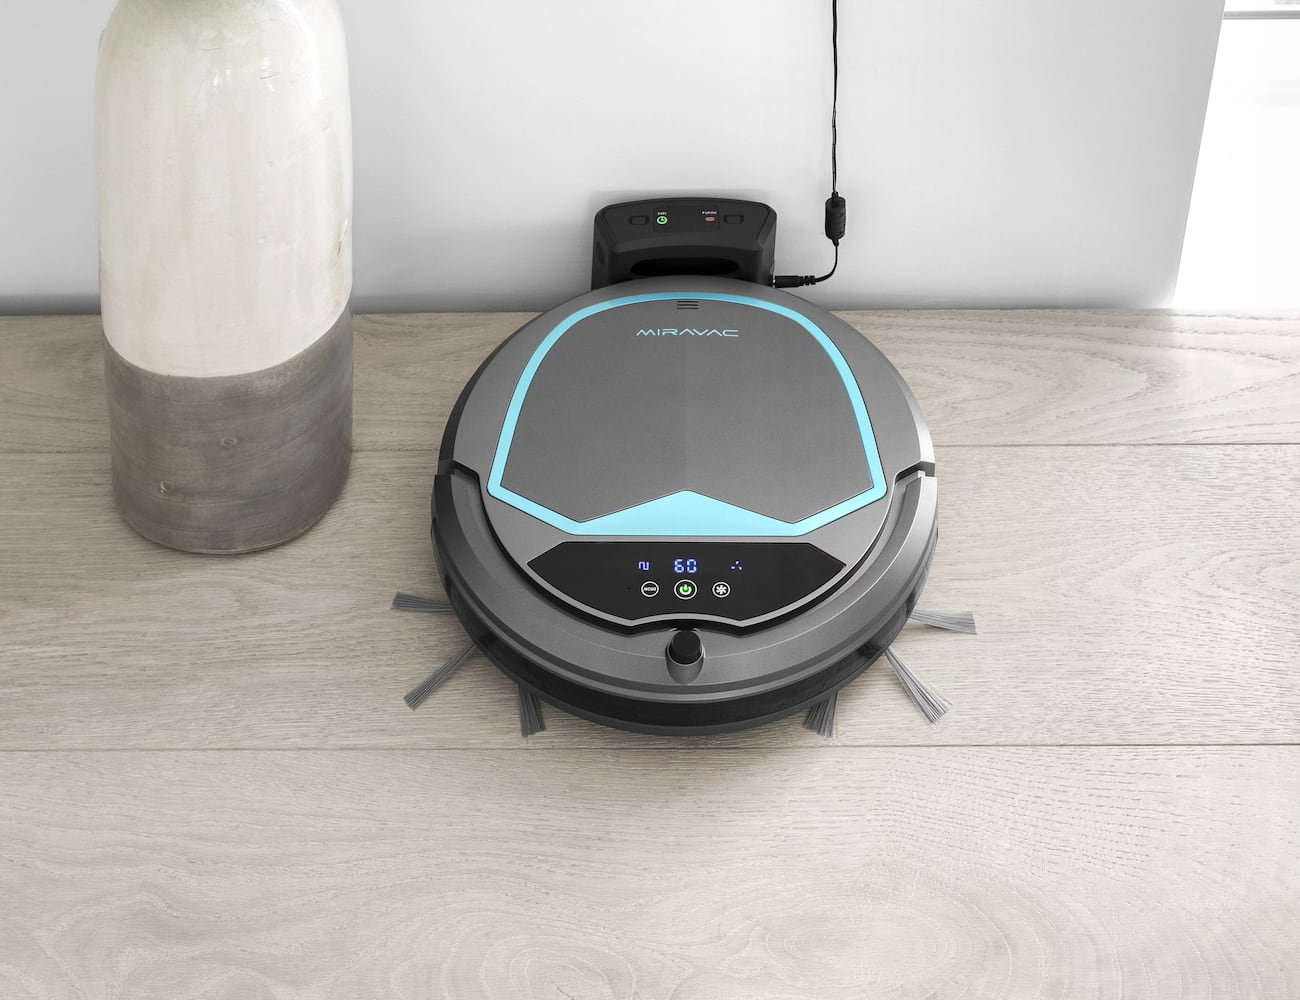 MIRAVAC Robotic Vacuum Cleaner helps you save time on your daily cleaning routine